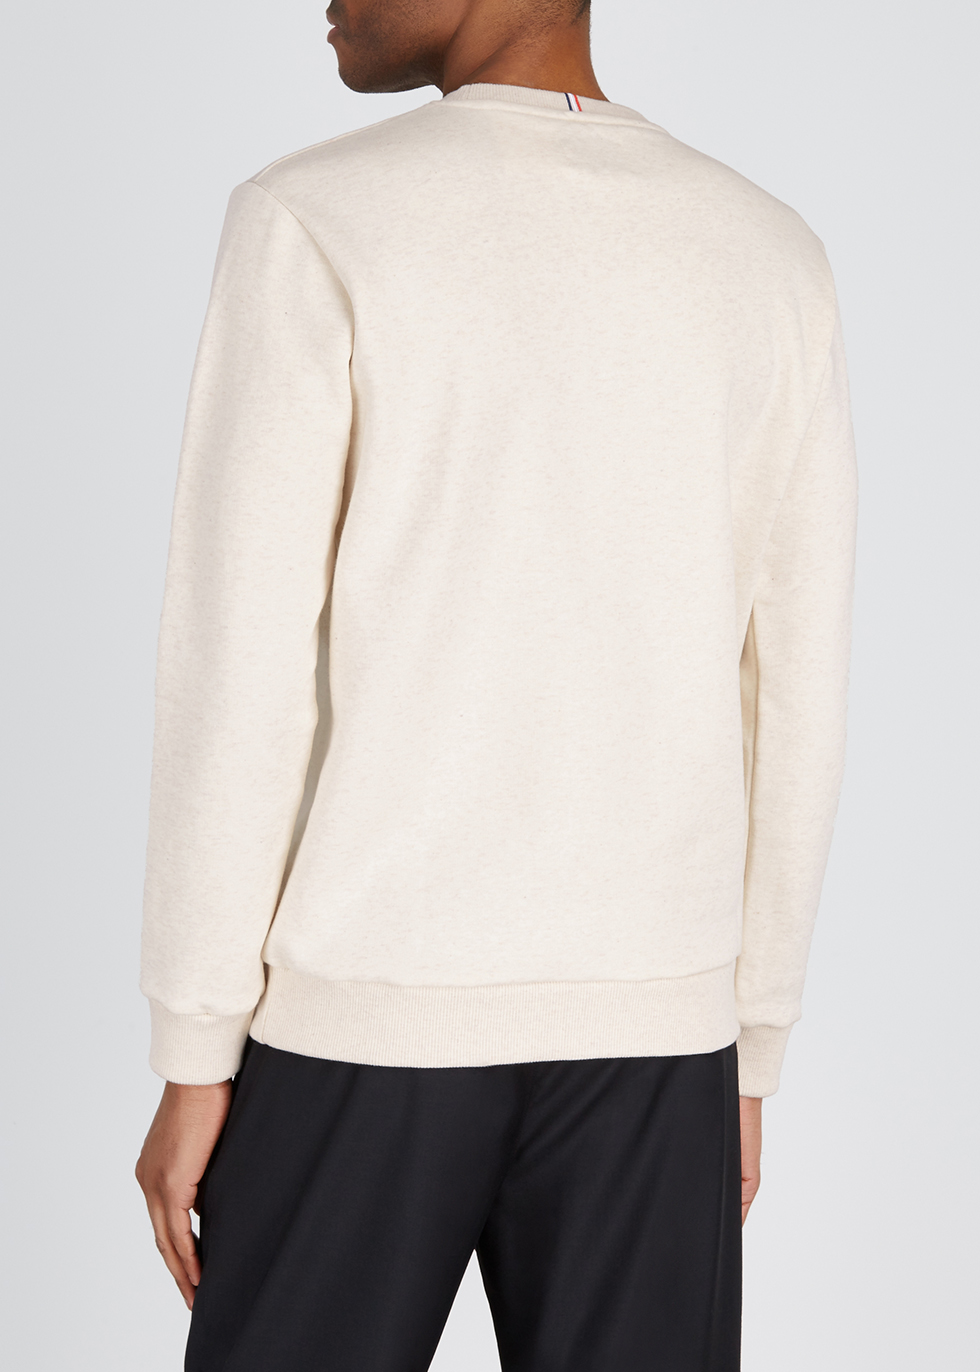 Ivory cotton-blend sweatshirt - Les Deux